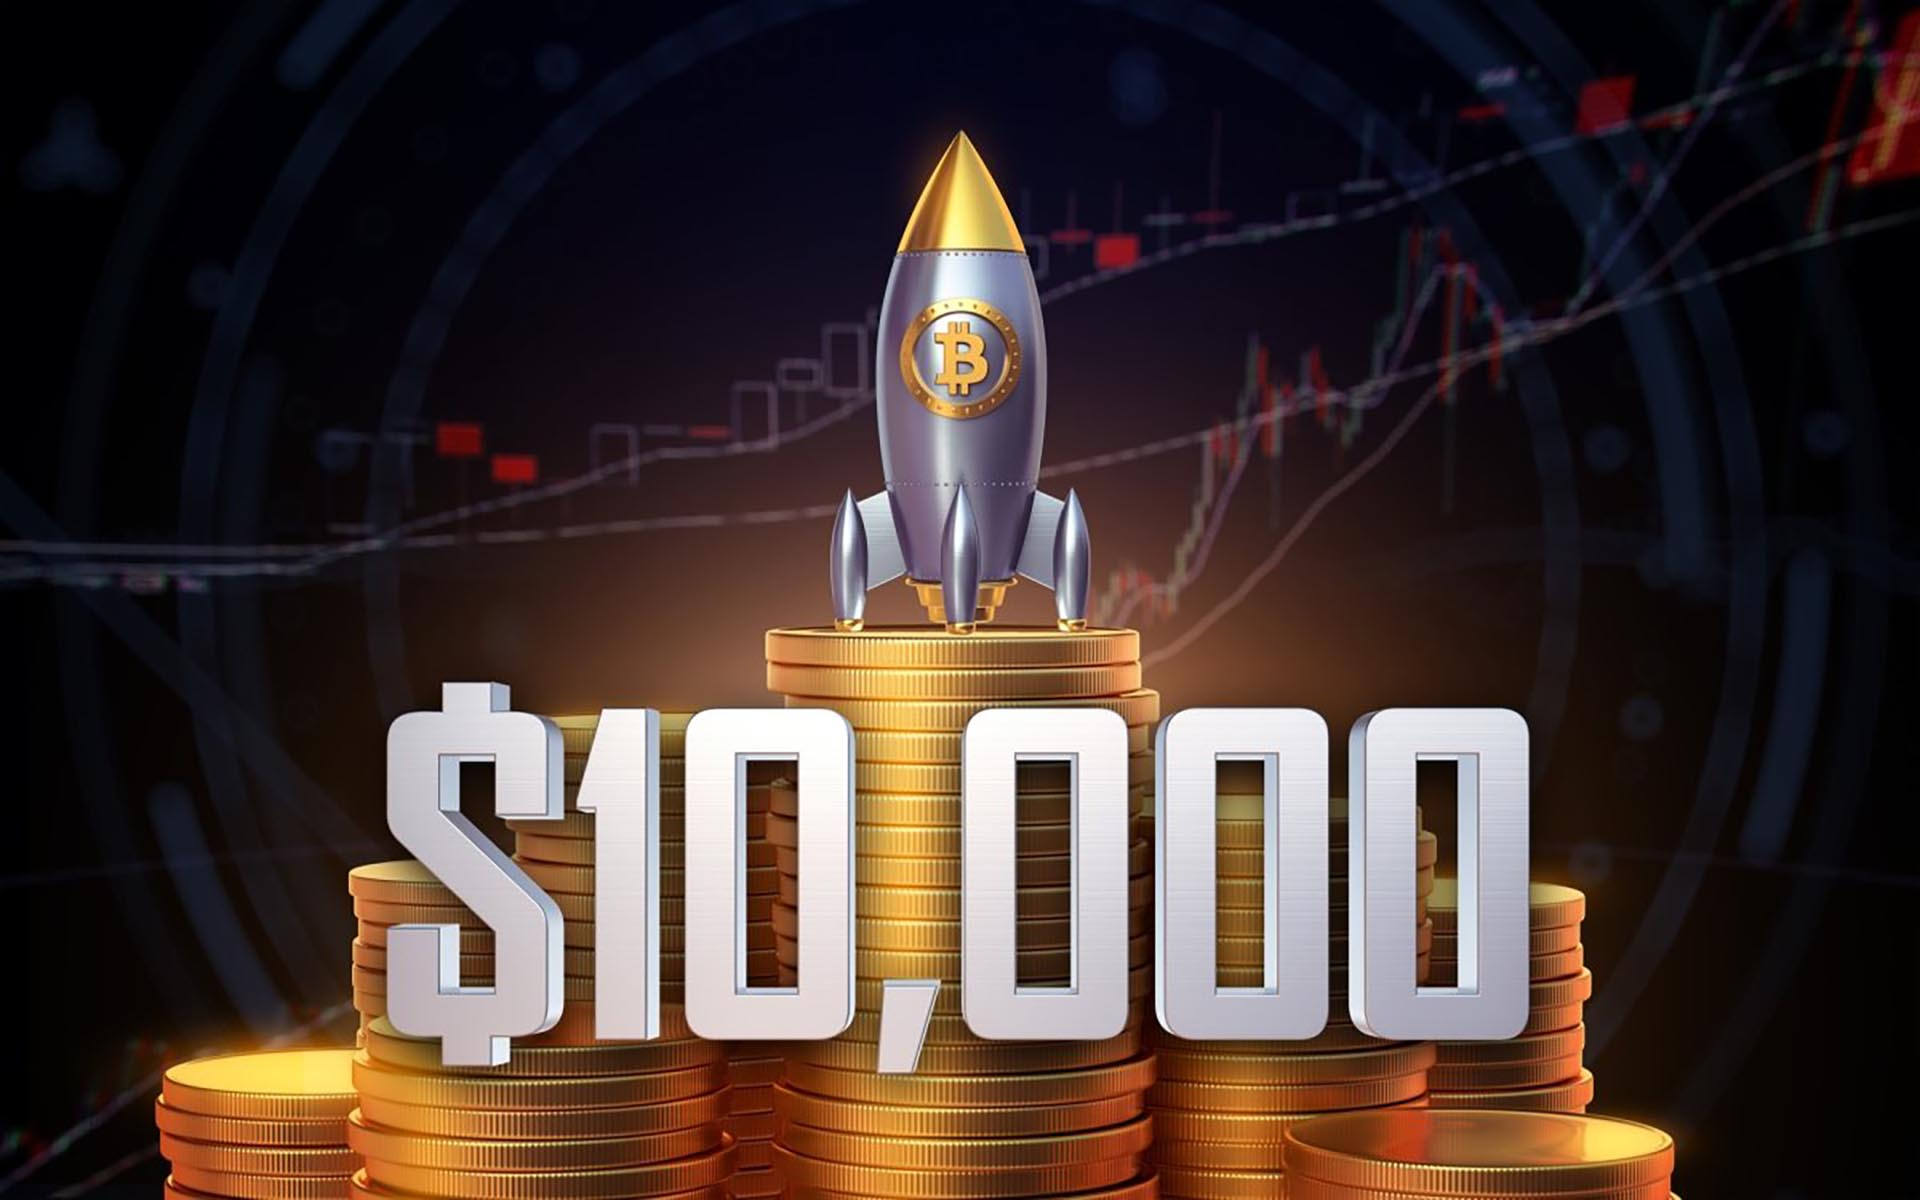 bitcoin 1 - Bitcoin (BTC) Surpasses The Psychological Level Of $10k Once Again After Completing A Golden Cross Formation